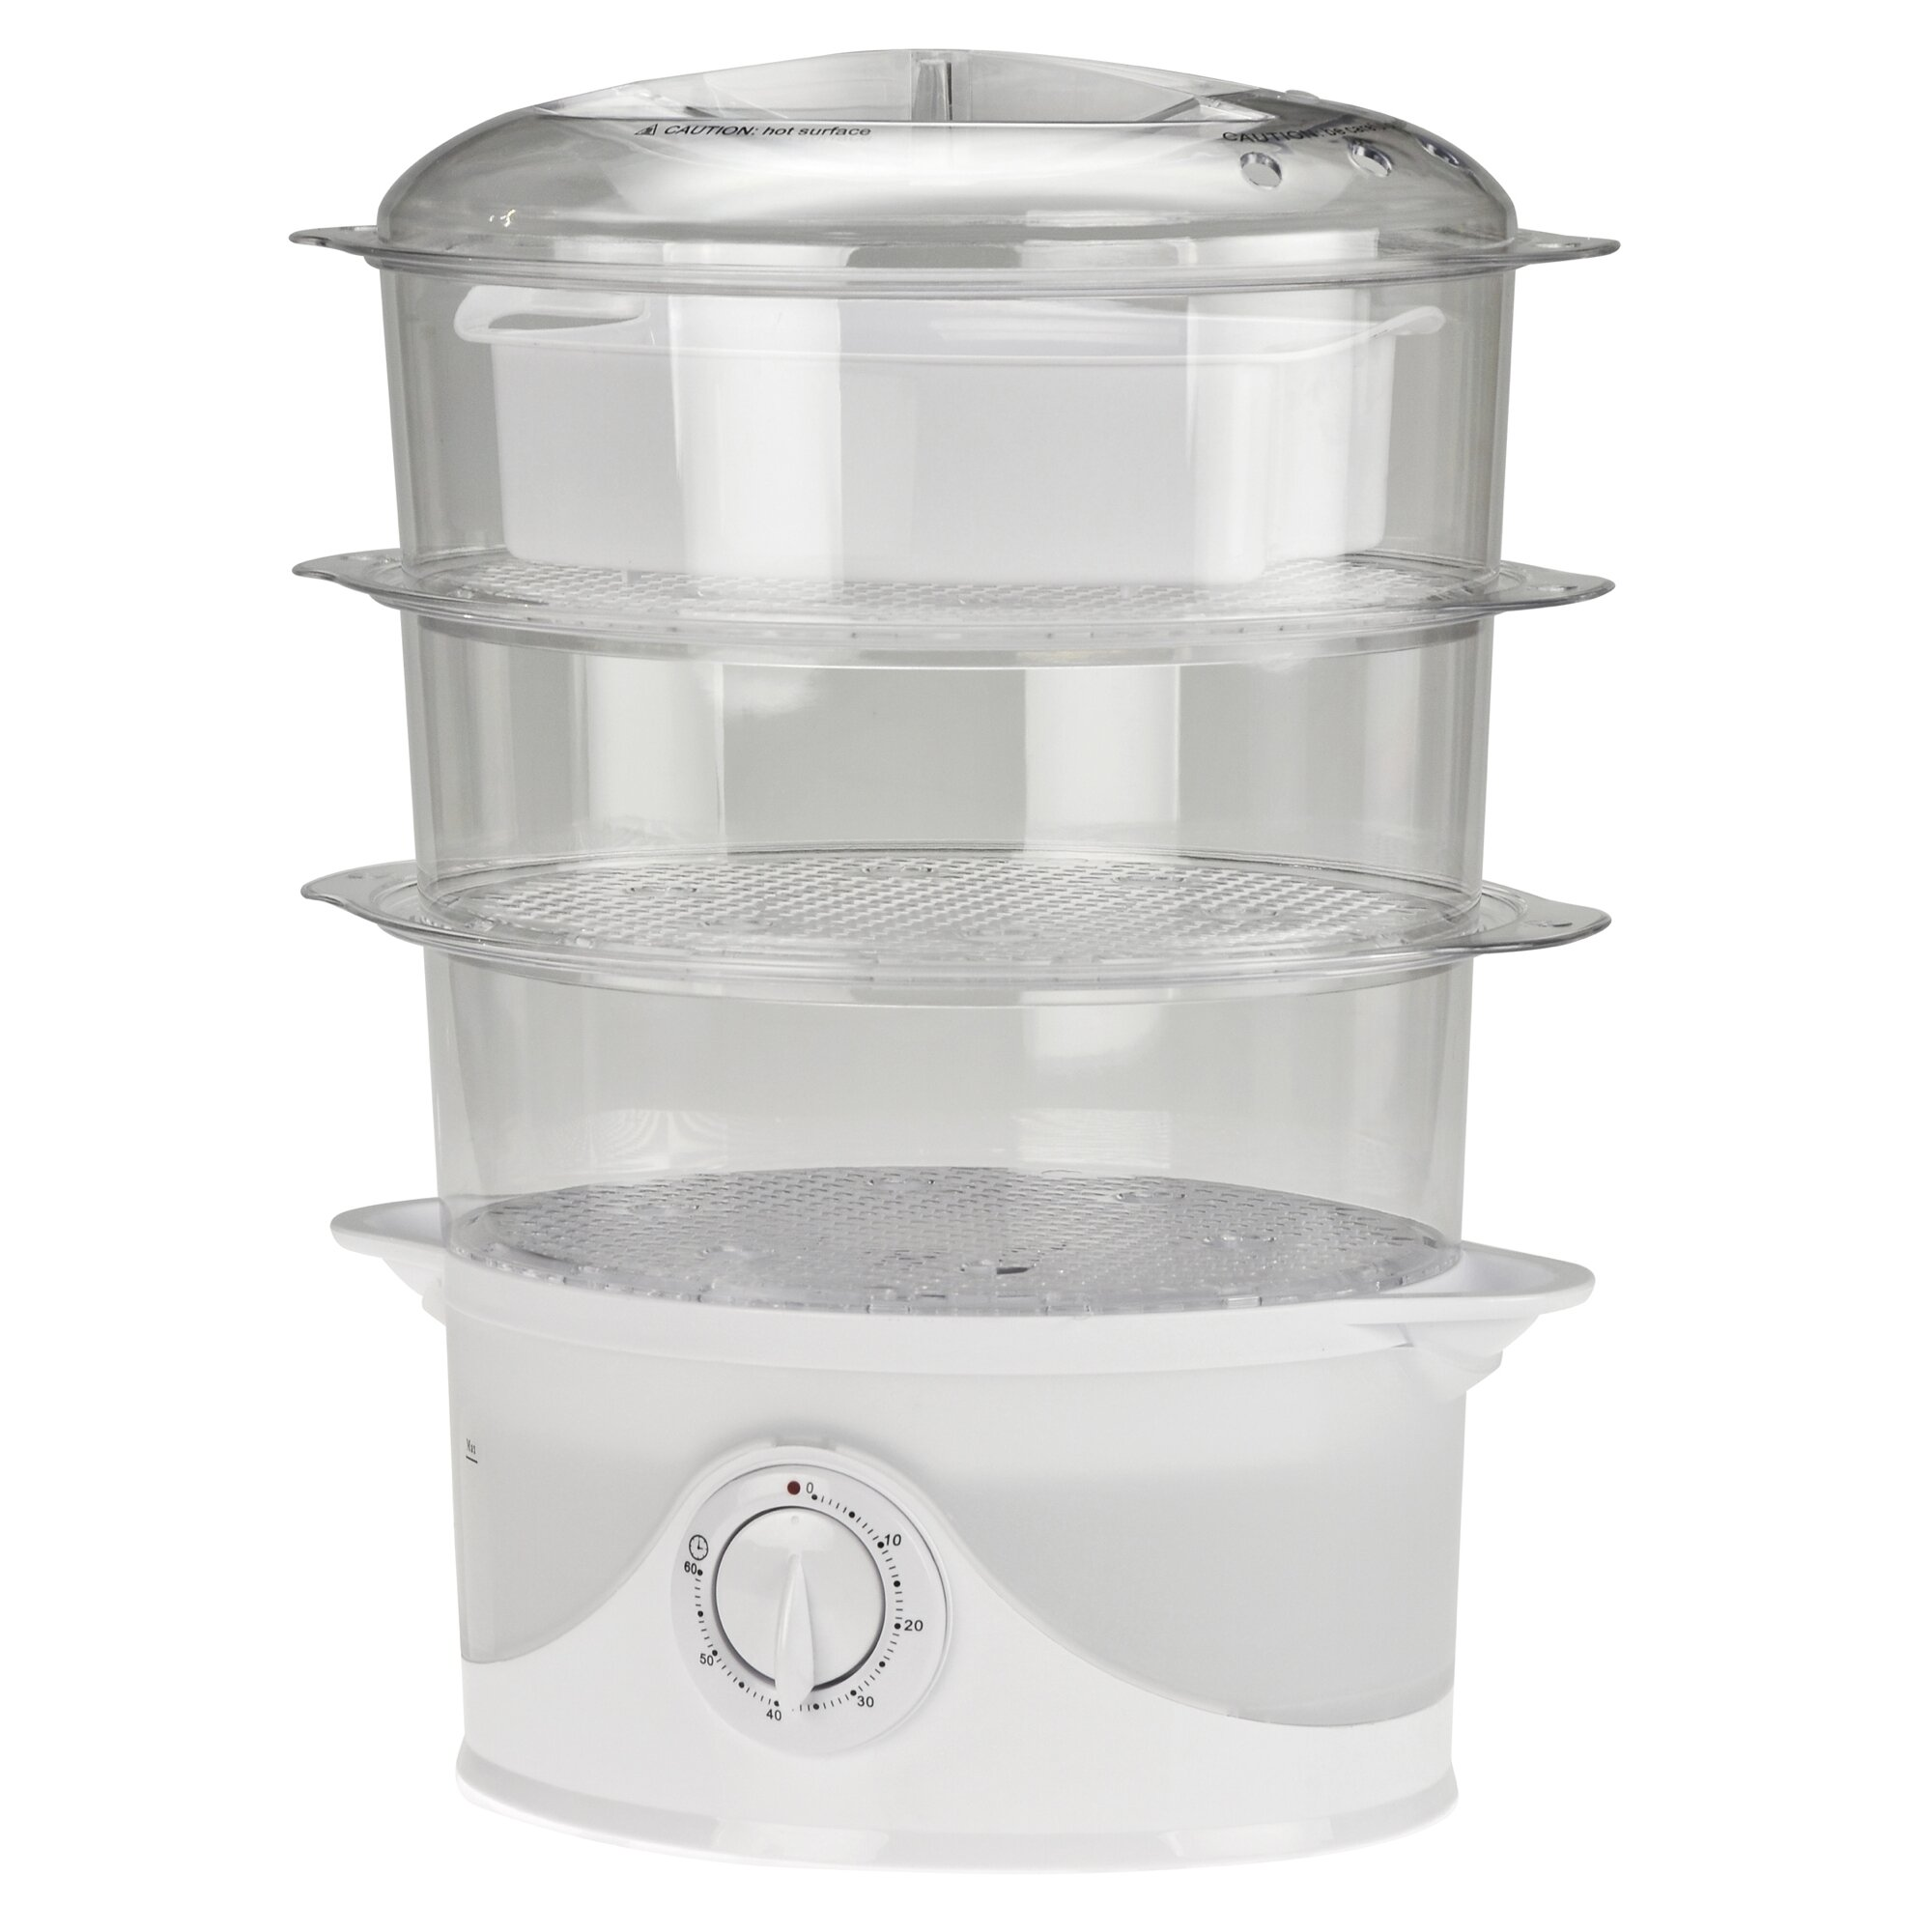 Kitchen Living Food Steamer: Kalorik 9.5 Qt. Food Steamer & Reviews